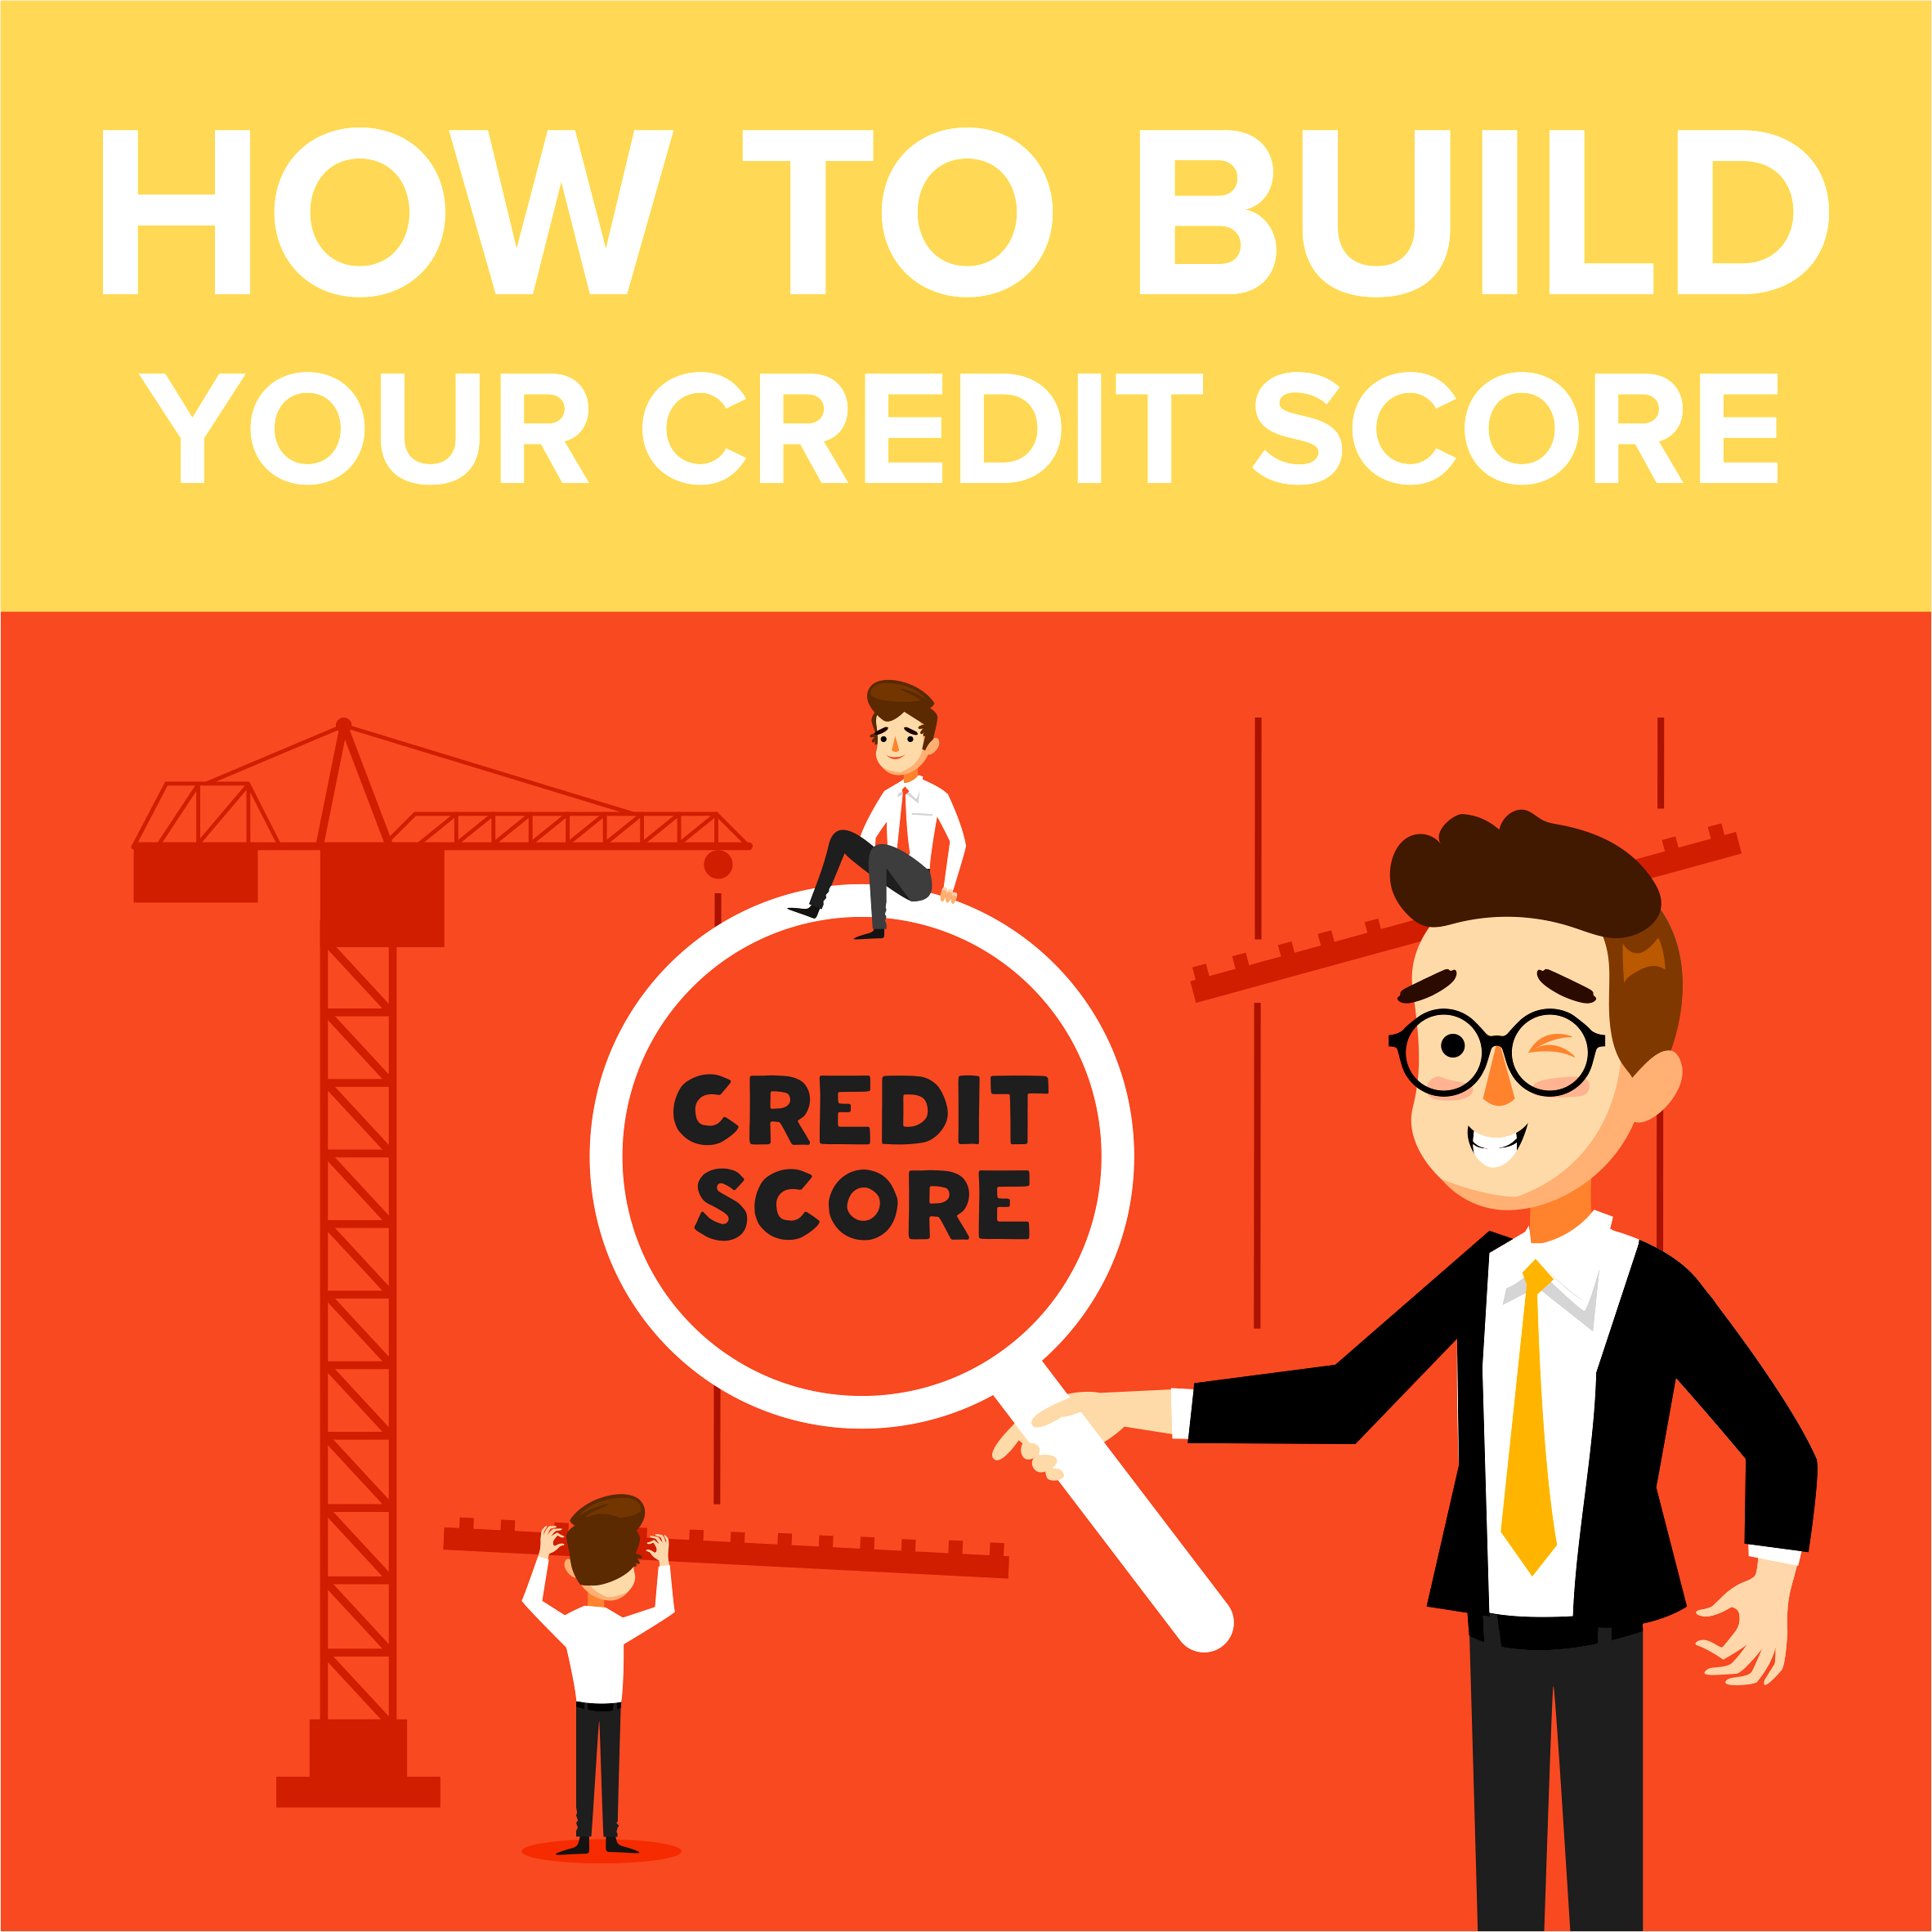 How to Build Your Credit Score?